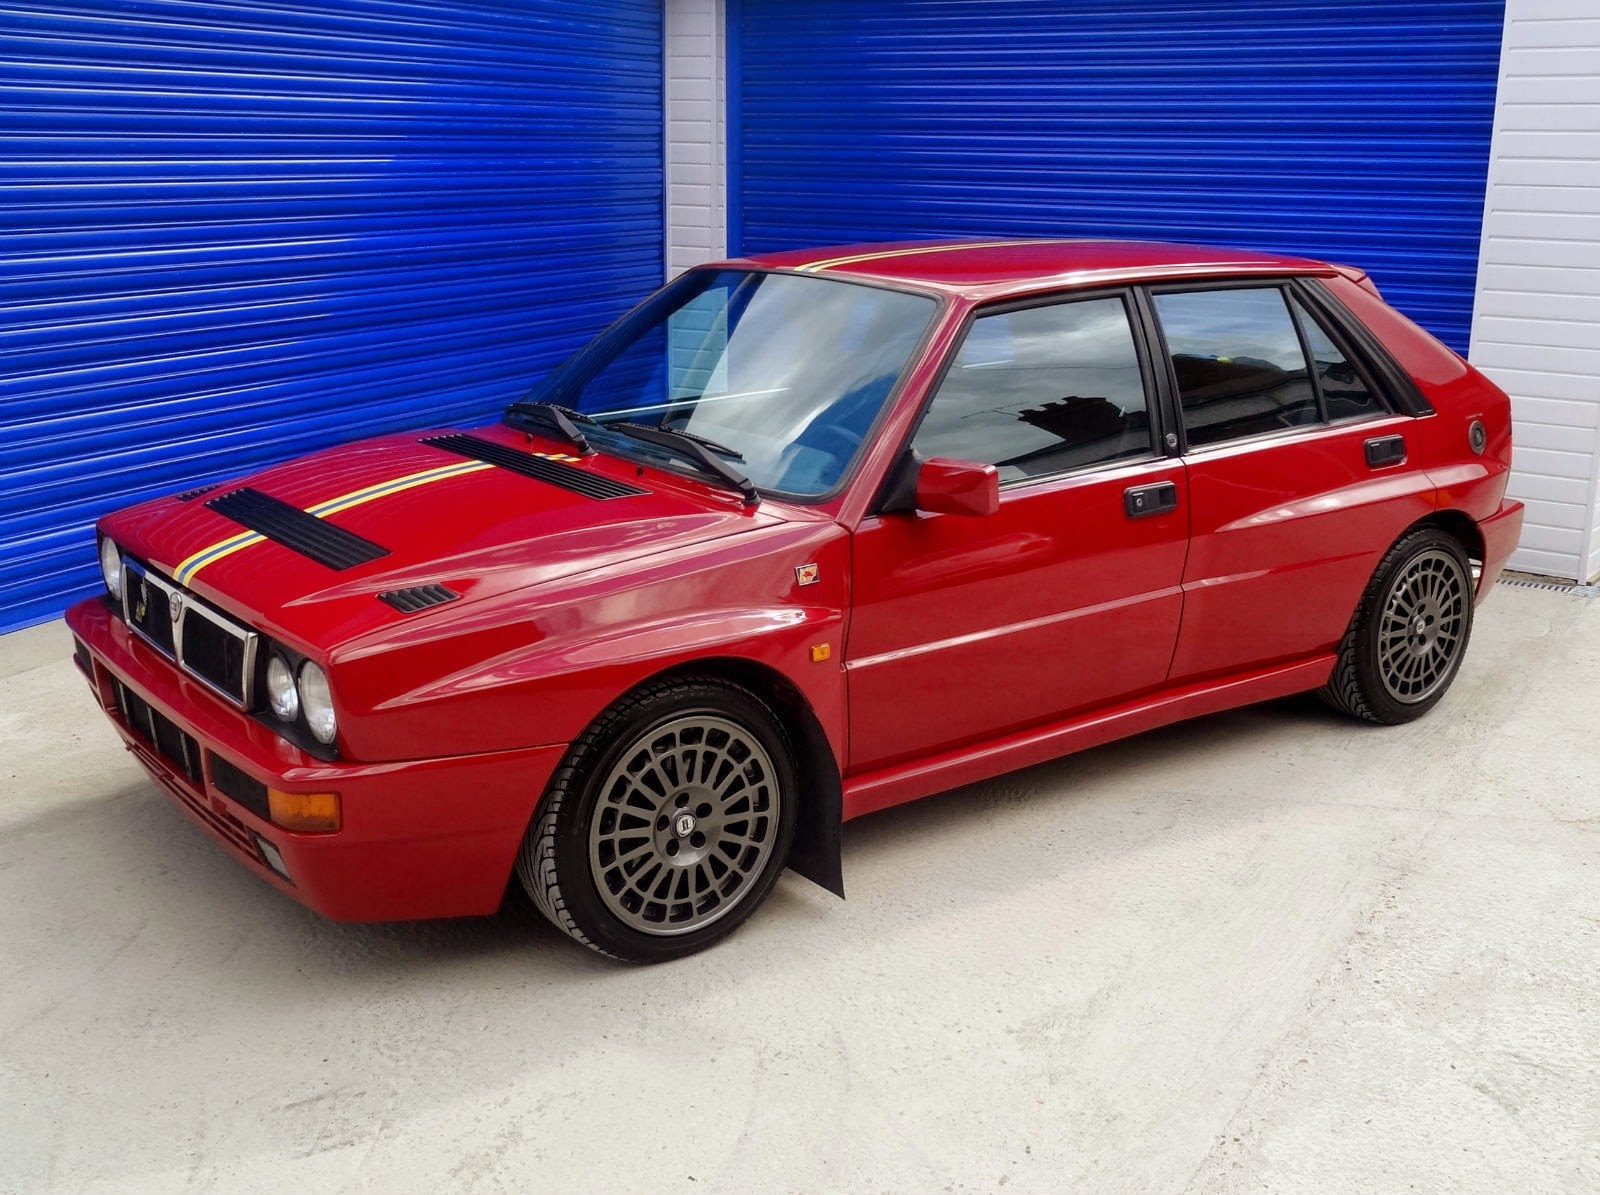 lancia delta integrale evo 2 final edition auto restorationice. Black Bedroom Furniture Sets. Home Design Ideas